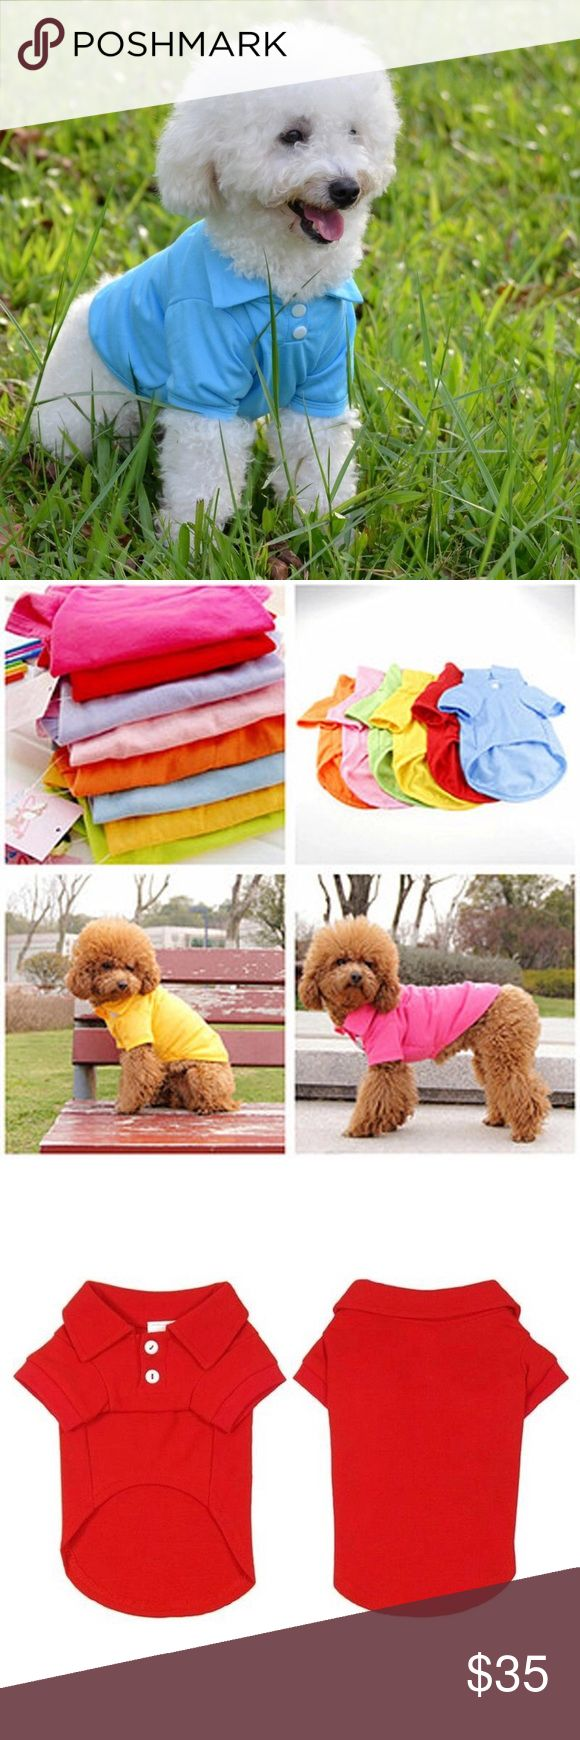 Coming Soon Polo Shirt For Male Dog/Cat Polo T Shirt Spring Puppy Dog Vest Pet T-shirt For Dogs Mascotas Small Dog Clothes Puppy Apparel Pet Clothing Accessories For Cat Gentlemans Boutique Other